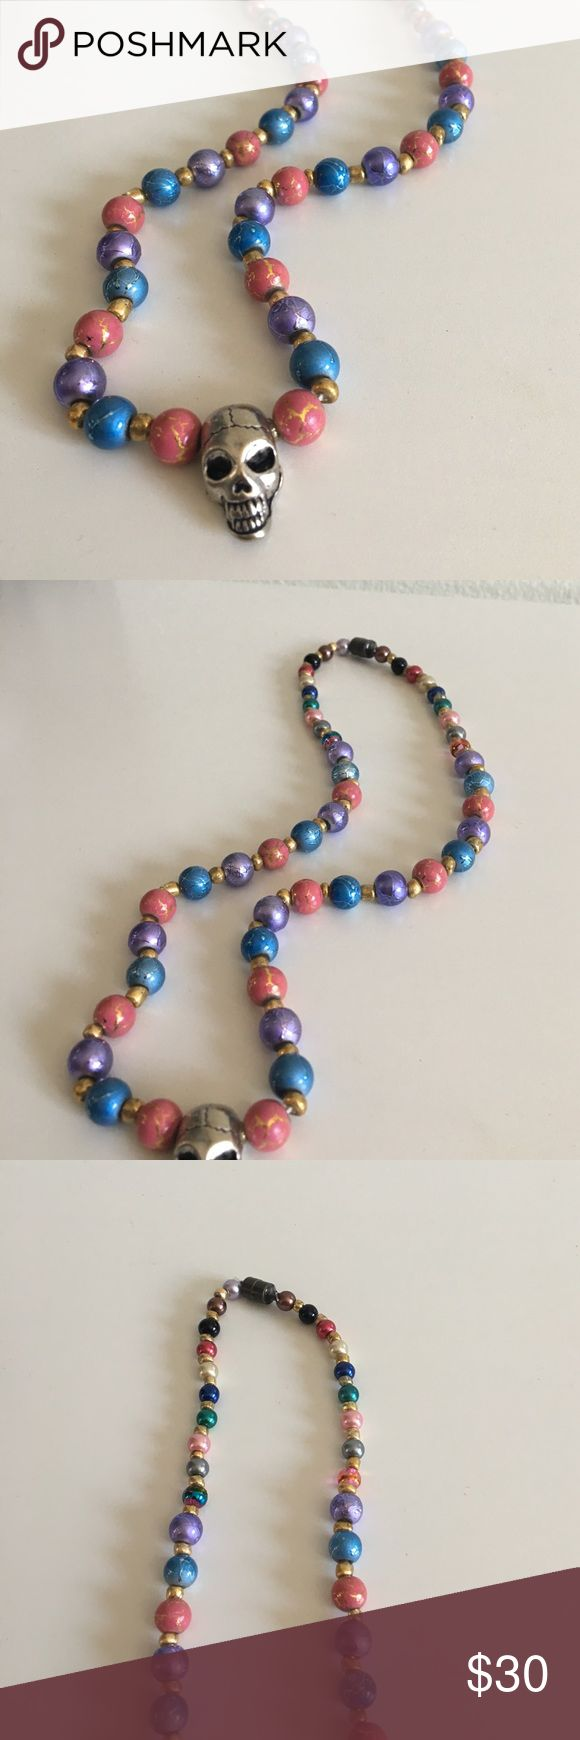 • Skull Island Pretty Punk Pendant Necklace • Handmade with love Jewelry!  beautiful beads🌸💕✈️ Magnetic closure for easy wear! ⭐️Bundles are 15% off⭐️ Please feel free to ask any questions or submit an offer ❤ Jewelry Necklaces